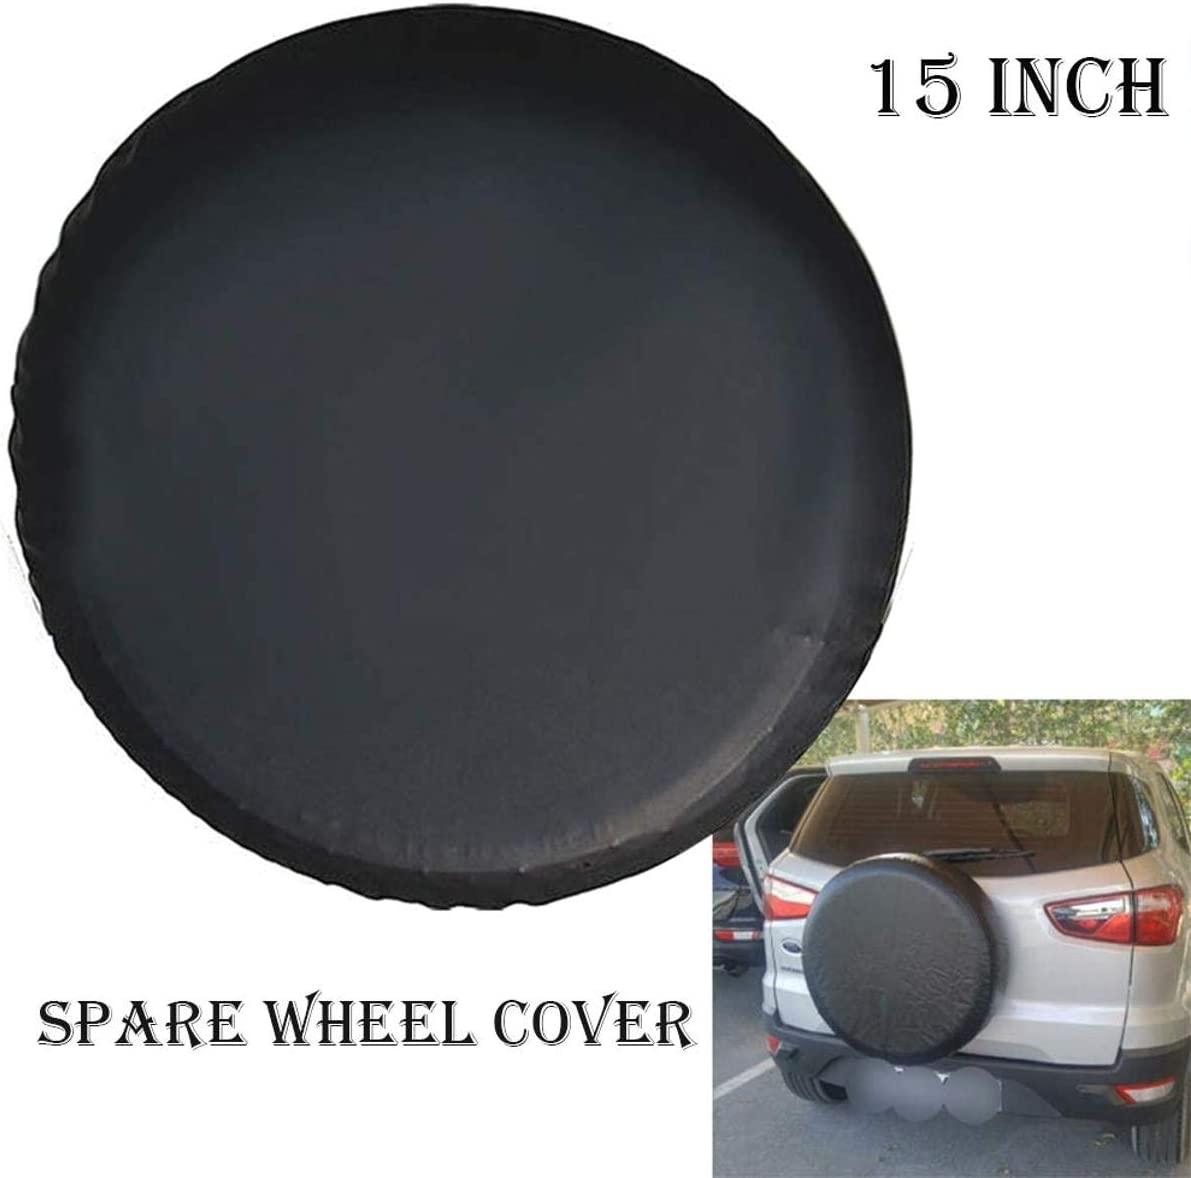 DULALA Car SUV Caravan Tyre Tire Cover 17 inches Spare Wheel Cover Leather Waterproof Sun Protector